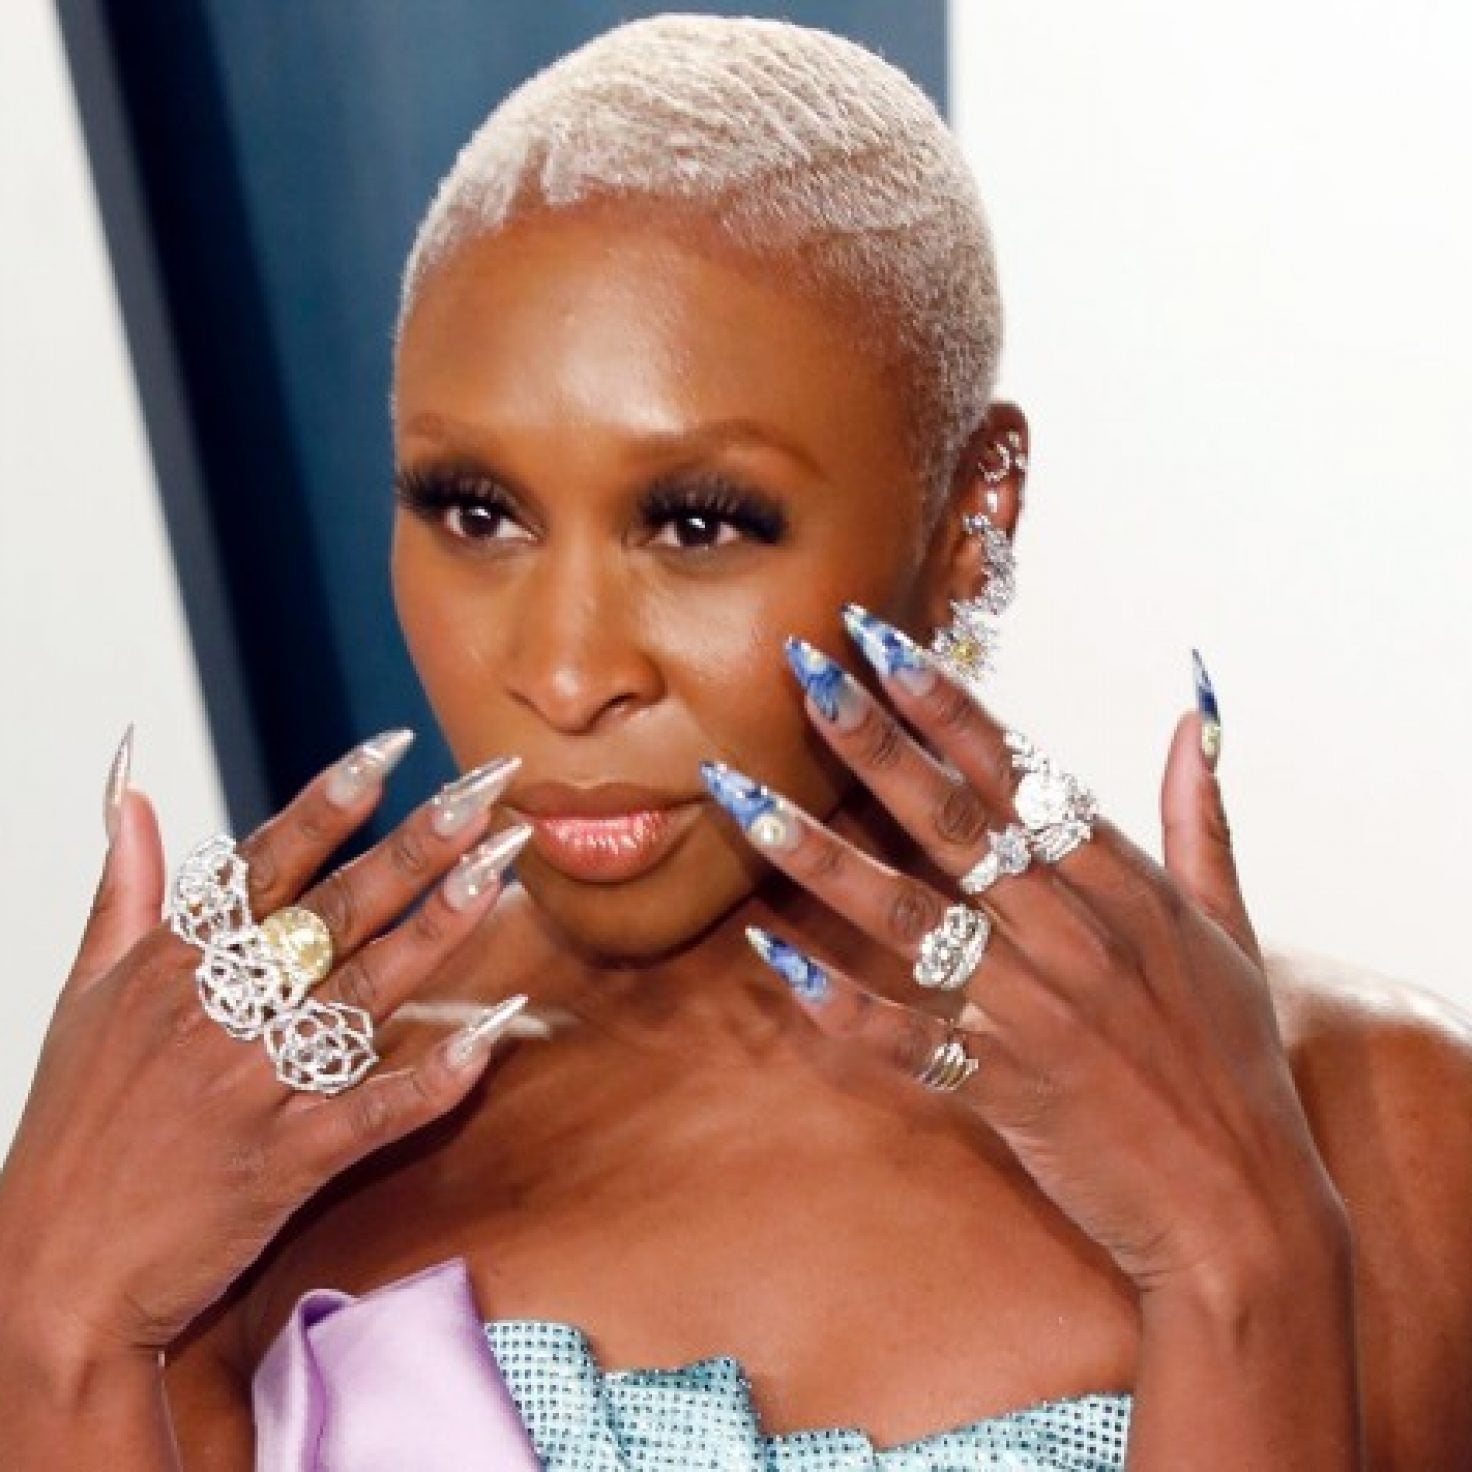 Cynthia Erivo's Louboutin Nails At The Oscars Were A Nod To Harriet Tubman